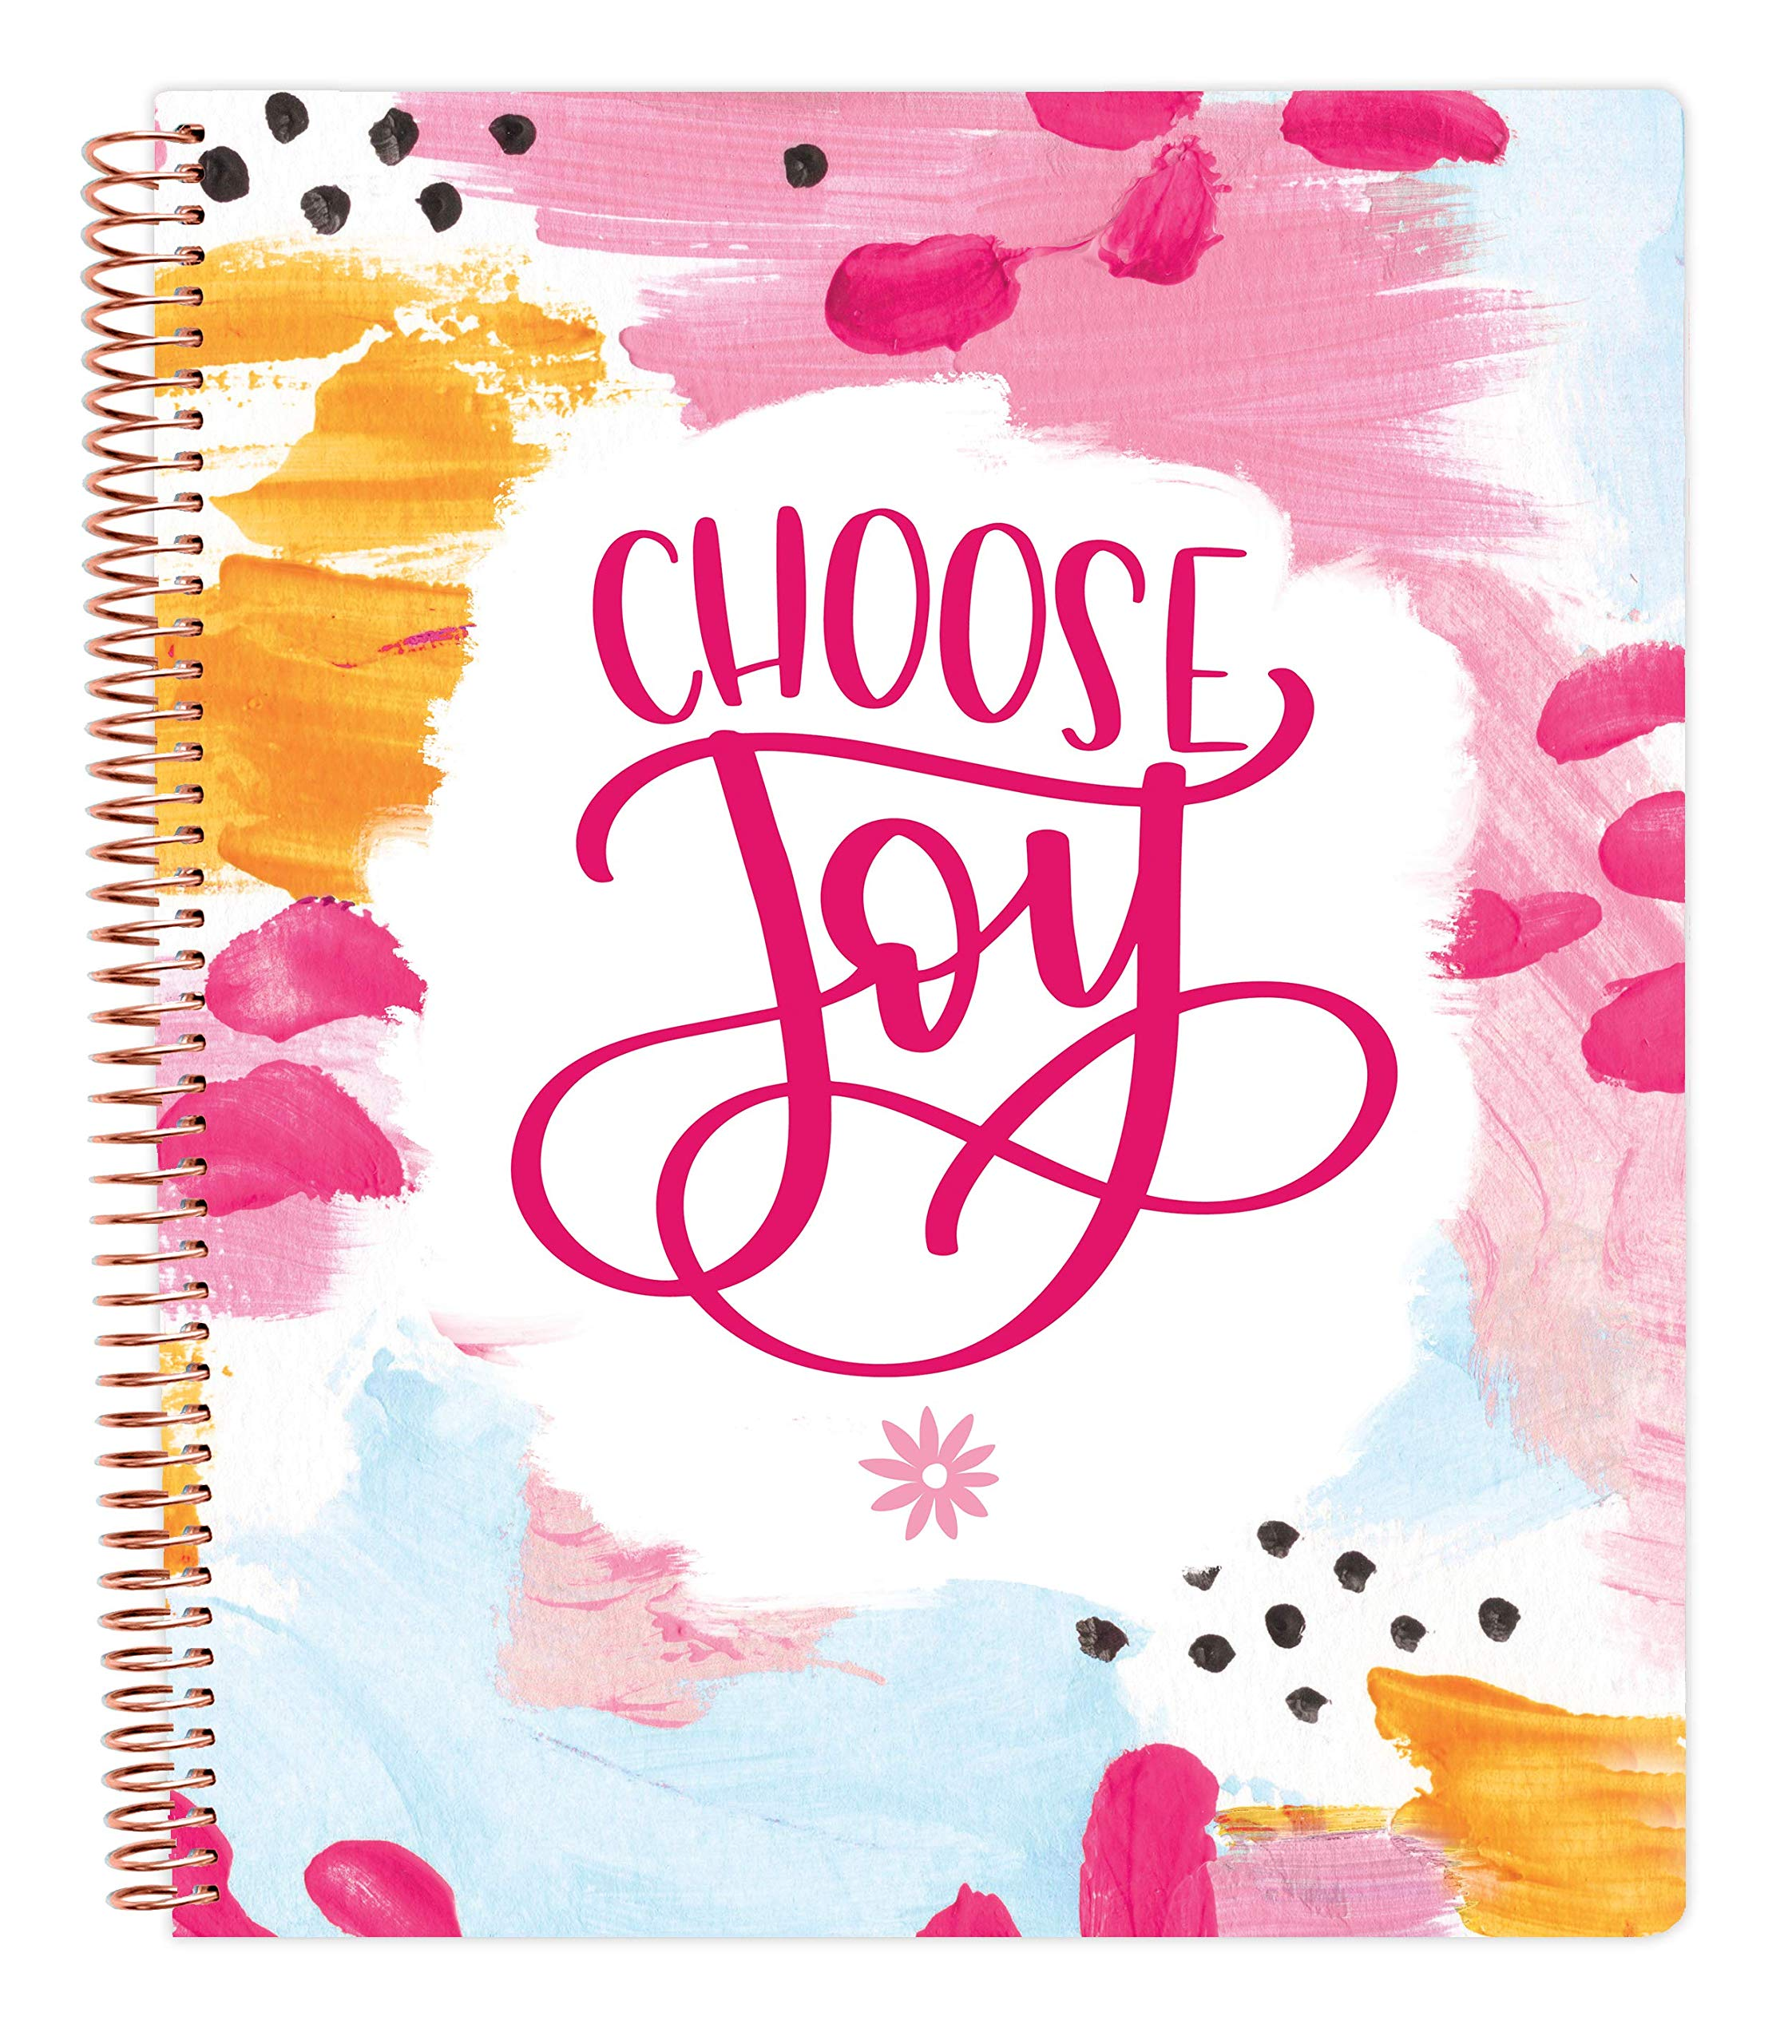 """bloom daily planners All in One Ultimate Monthly & Weekly Undated Calendar Planner, Notebook, Sketch Book, Grid Pages, Coloring Book and More! 9"""" x 11"""" - Choose Joy"""